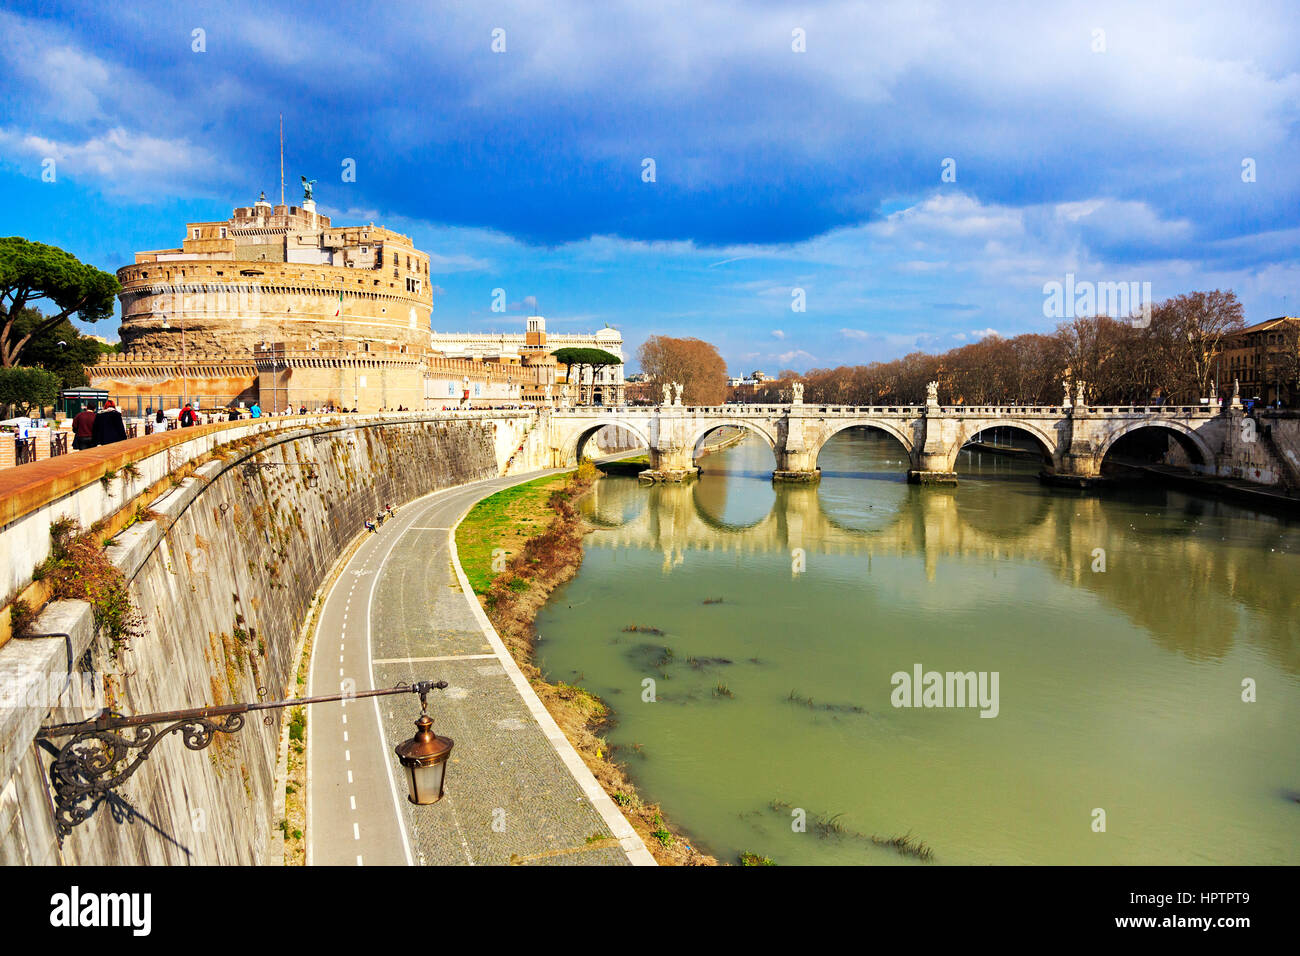 Castel Sant Angelo, with ethe bridge Pont Sant Angelo across the River Tiber in Parco Adriano district, Rome, Italy - Stock Image